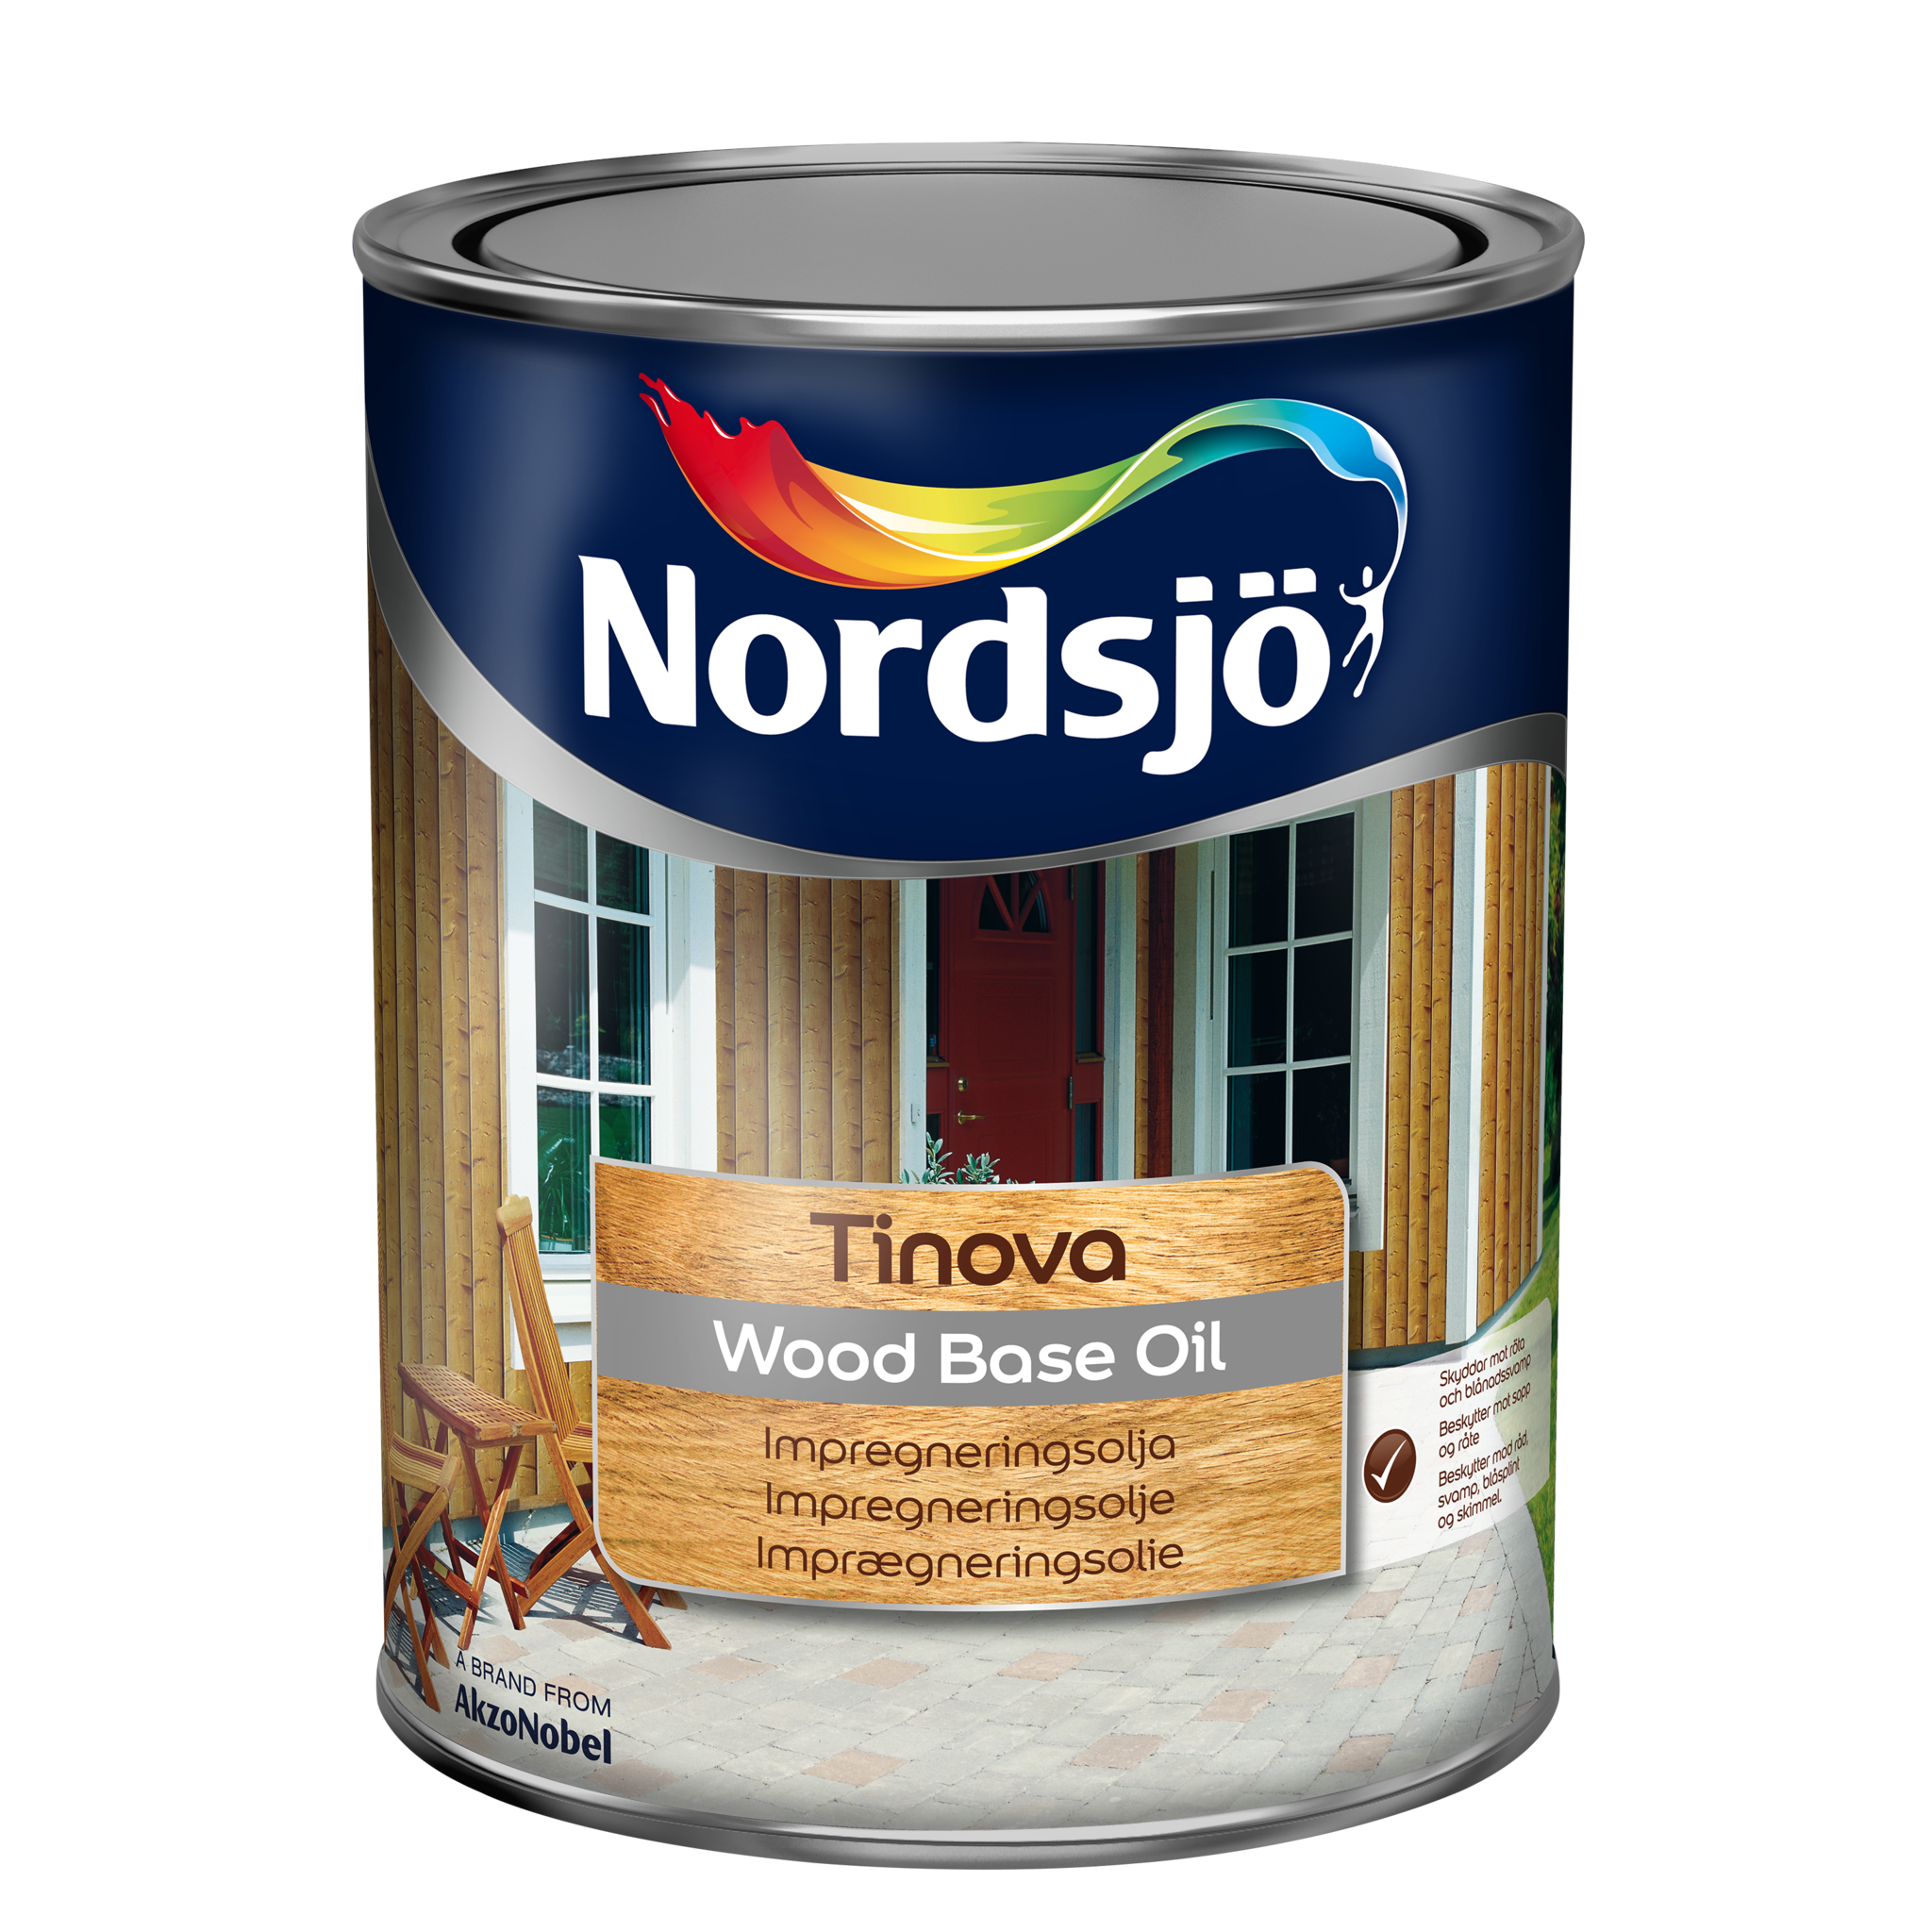 Nordsjö Tinova Wood Base Oil